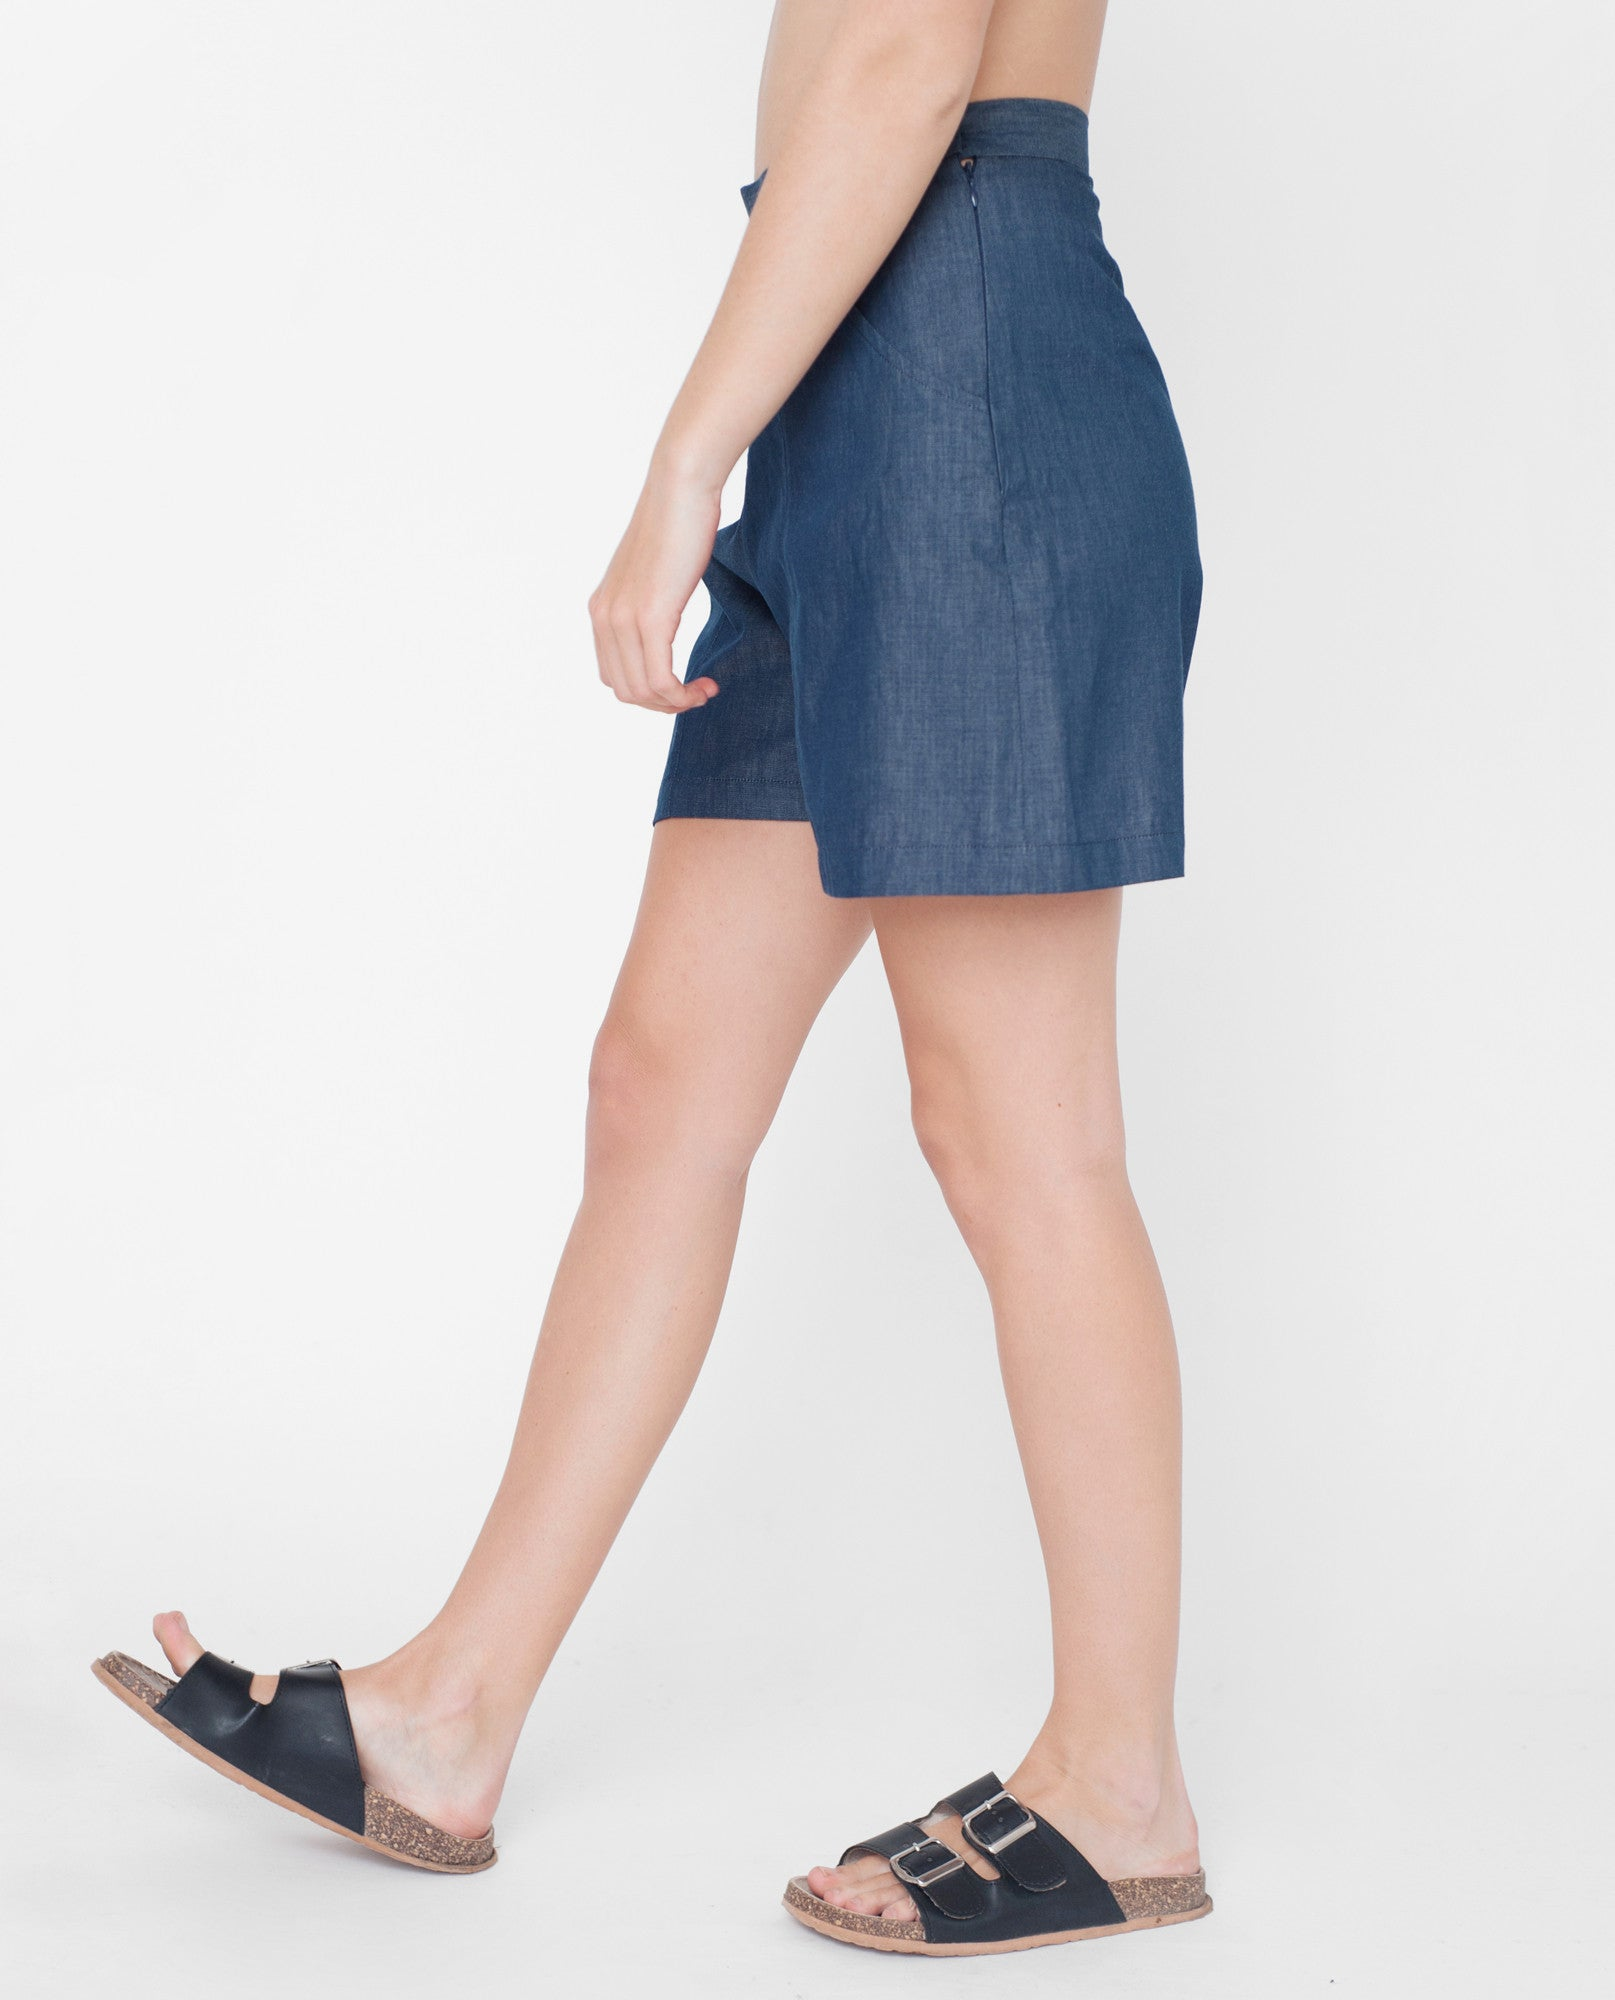 JOLIE Cotton Chambray Shorts In Navy